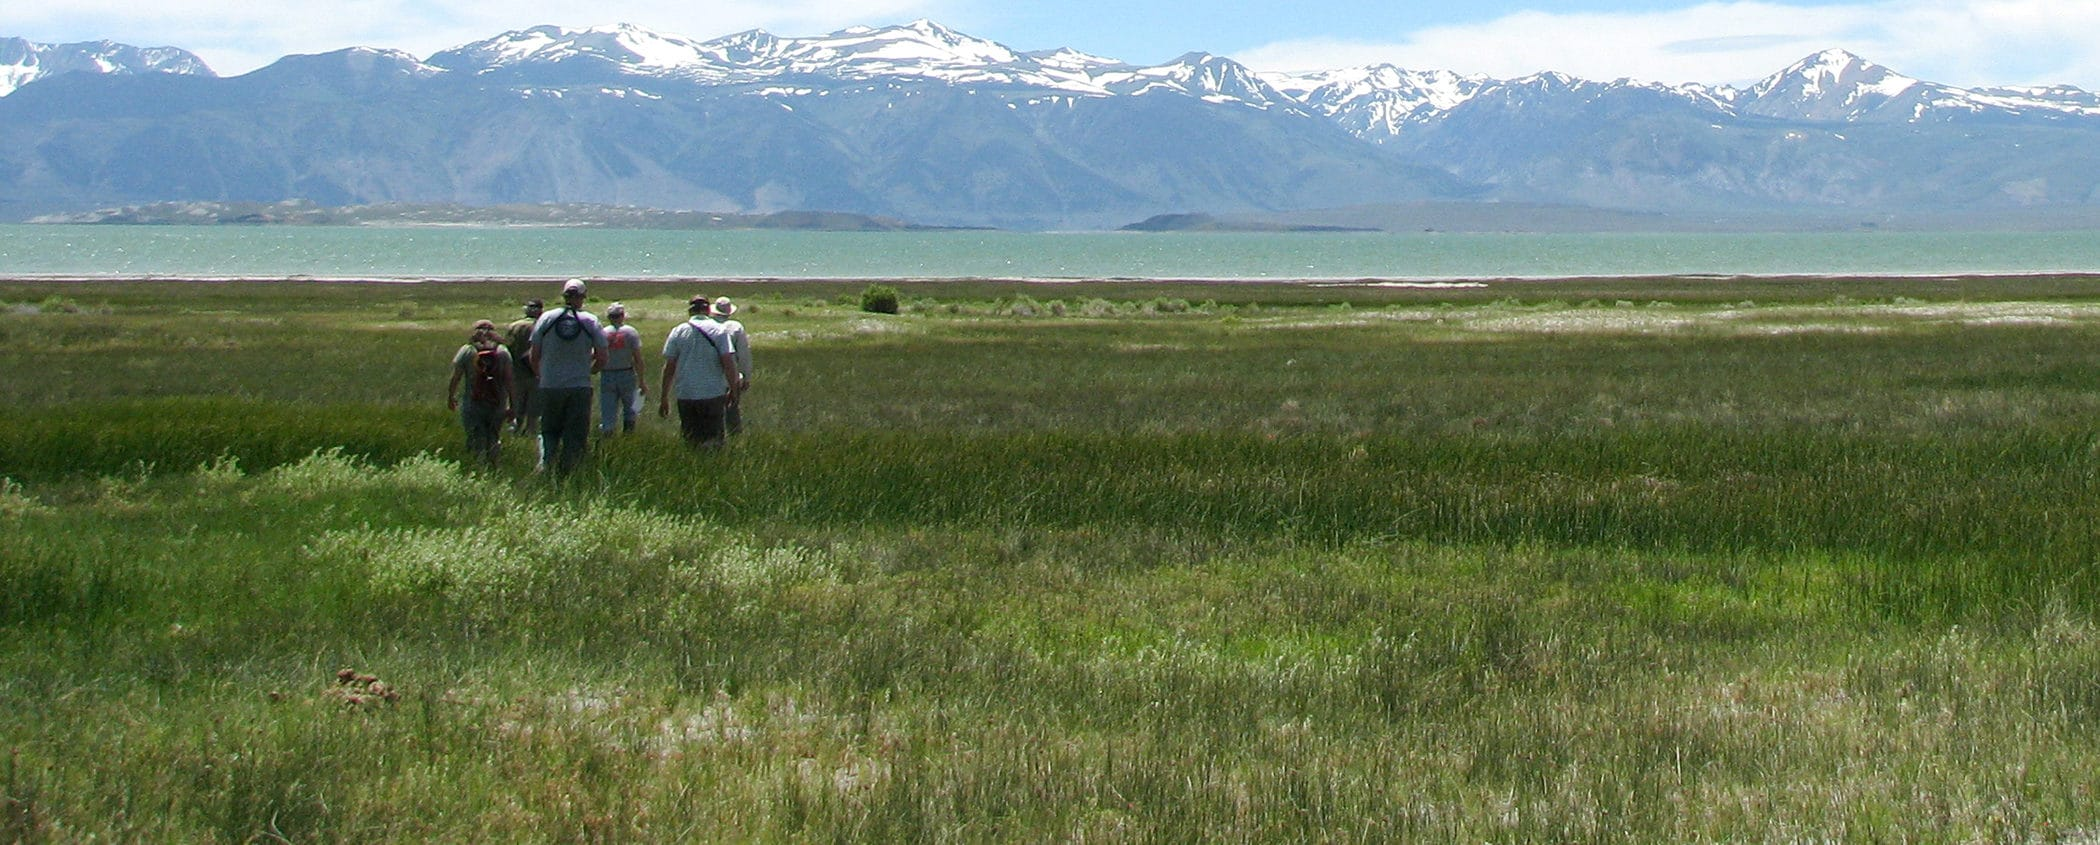 Six people walk in a close group together through a wide green wild grass field toward a blue-green lake in the distance with the Sierra Nevada rising sharply and dramatically in the far distance with snow capped peaks.